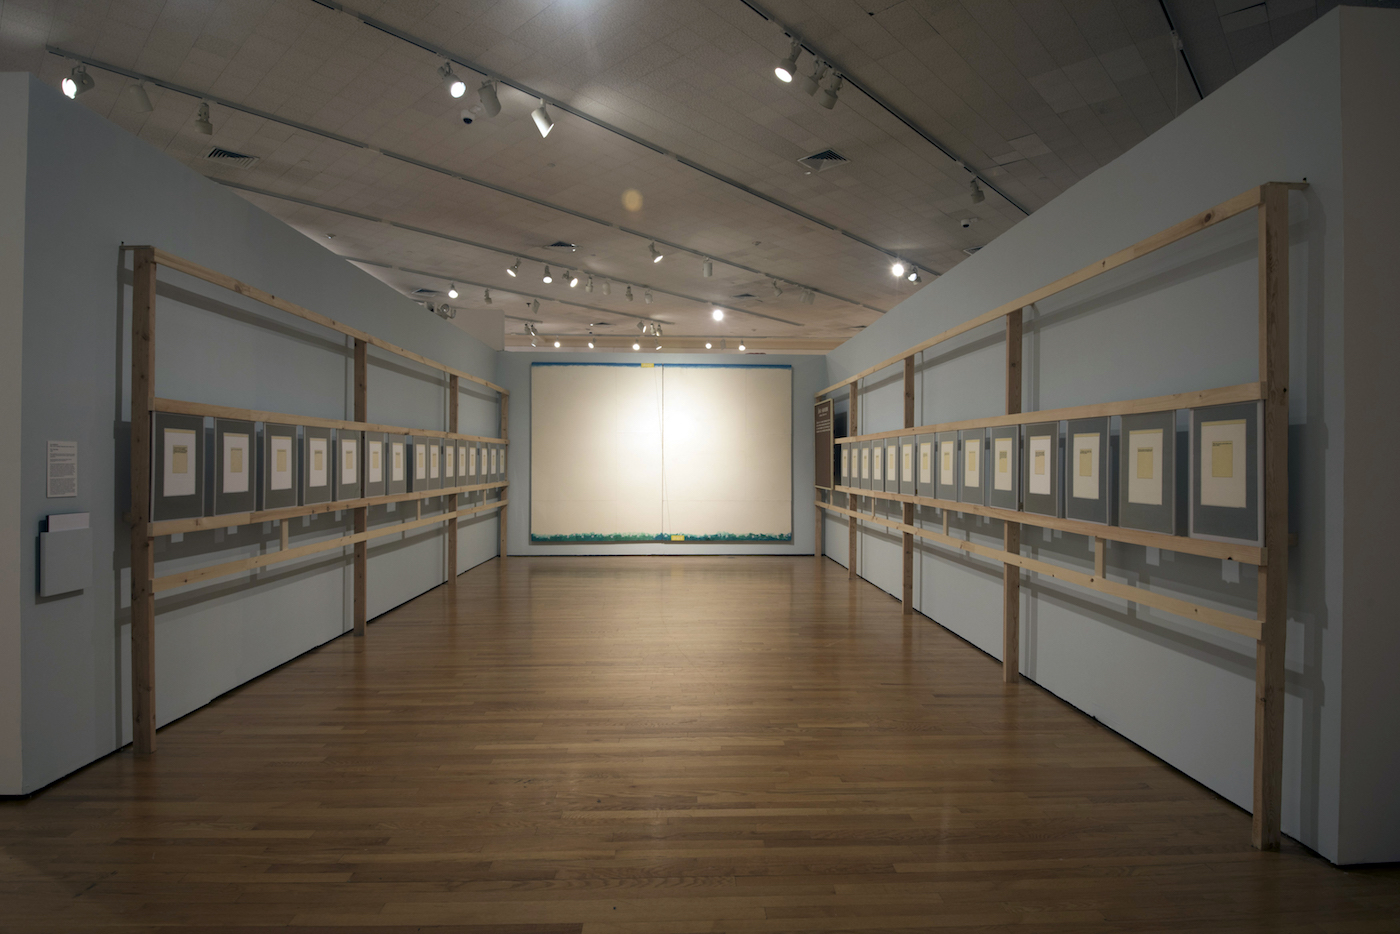 "INSTALLATION VIEW OF ""THE GREAT AXIS"" (1984) BY ILYA KABAKOV (PHOTO BY PETER JACOBS, COURTESY ZIMMERLI ART MUSEUM AT RUTGERS)"